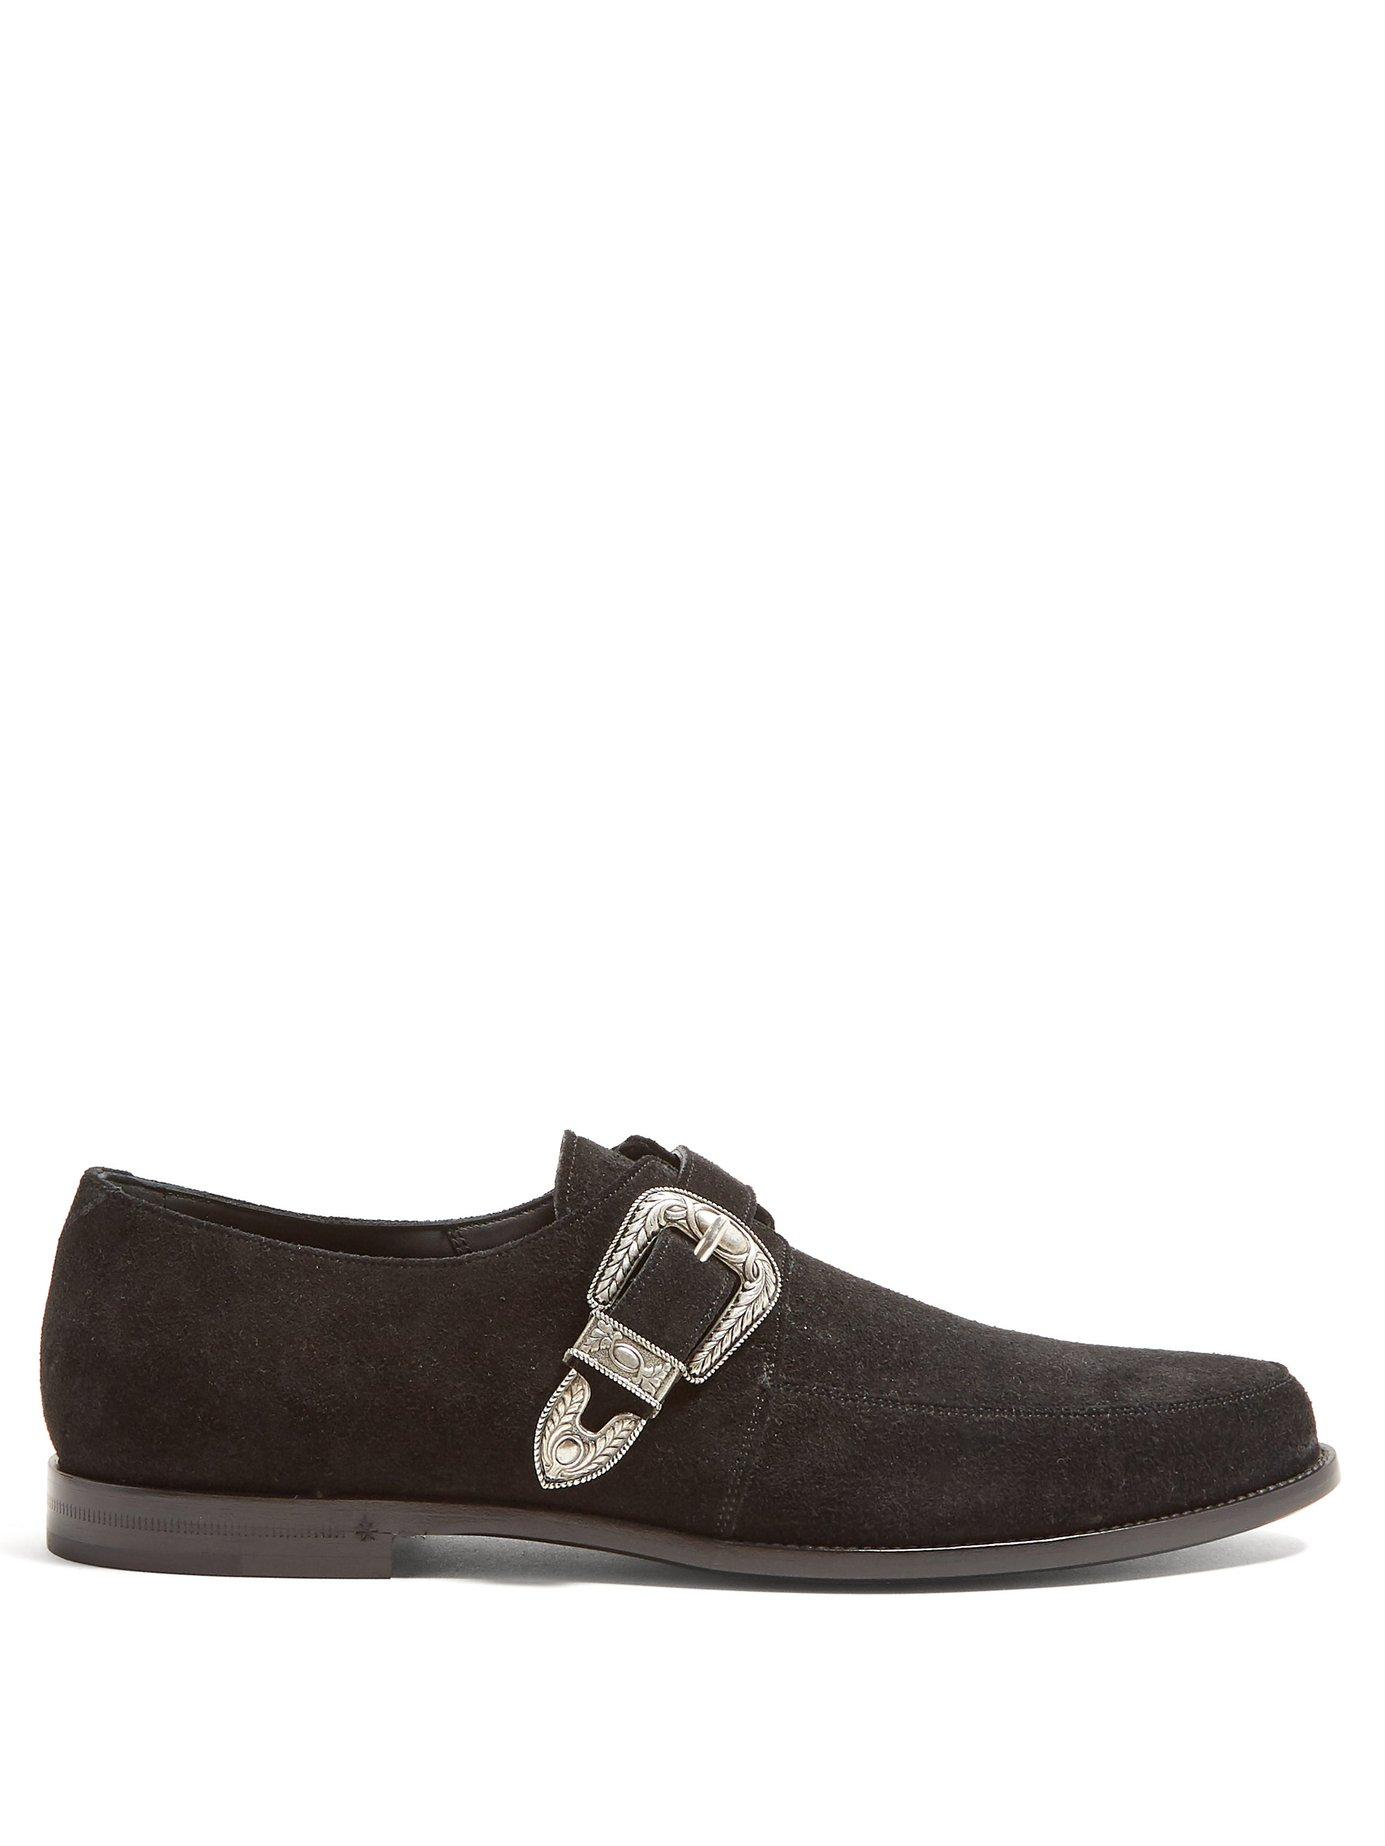 2382834f53f Lyst - Saint Laurent Charles Buckled Suede Loafers in Black for Men